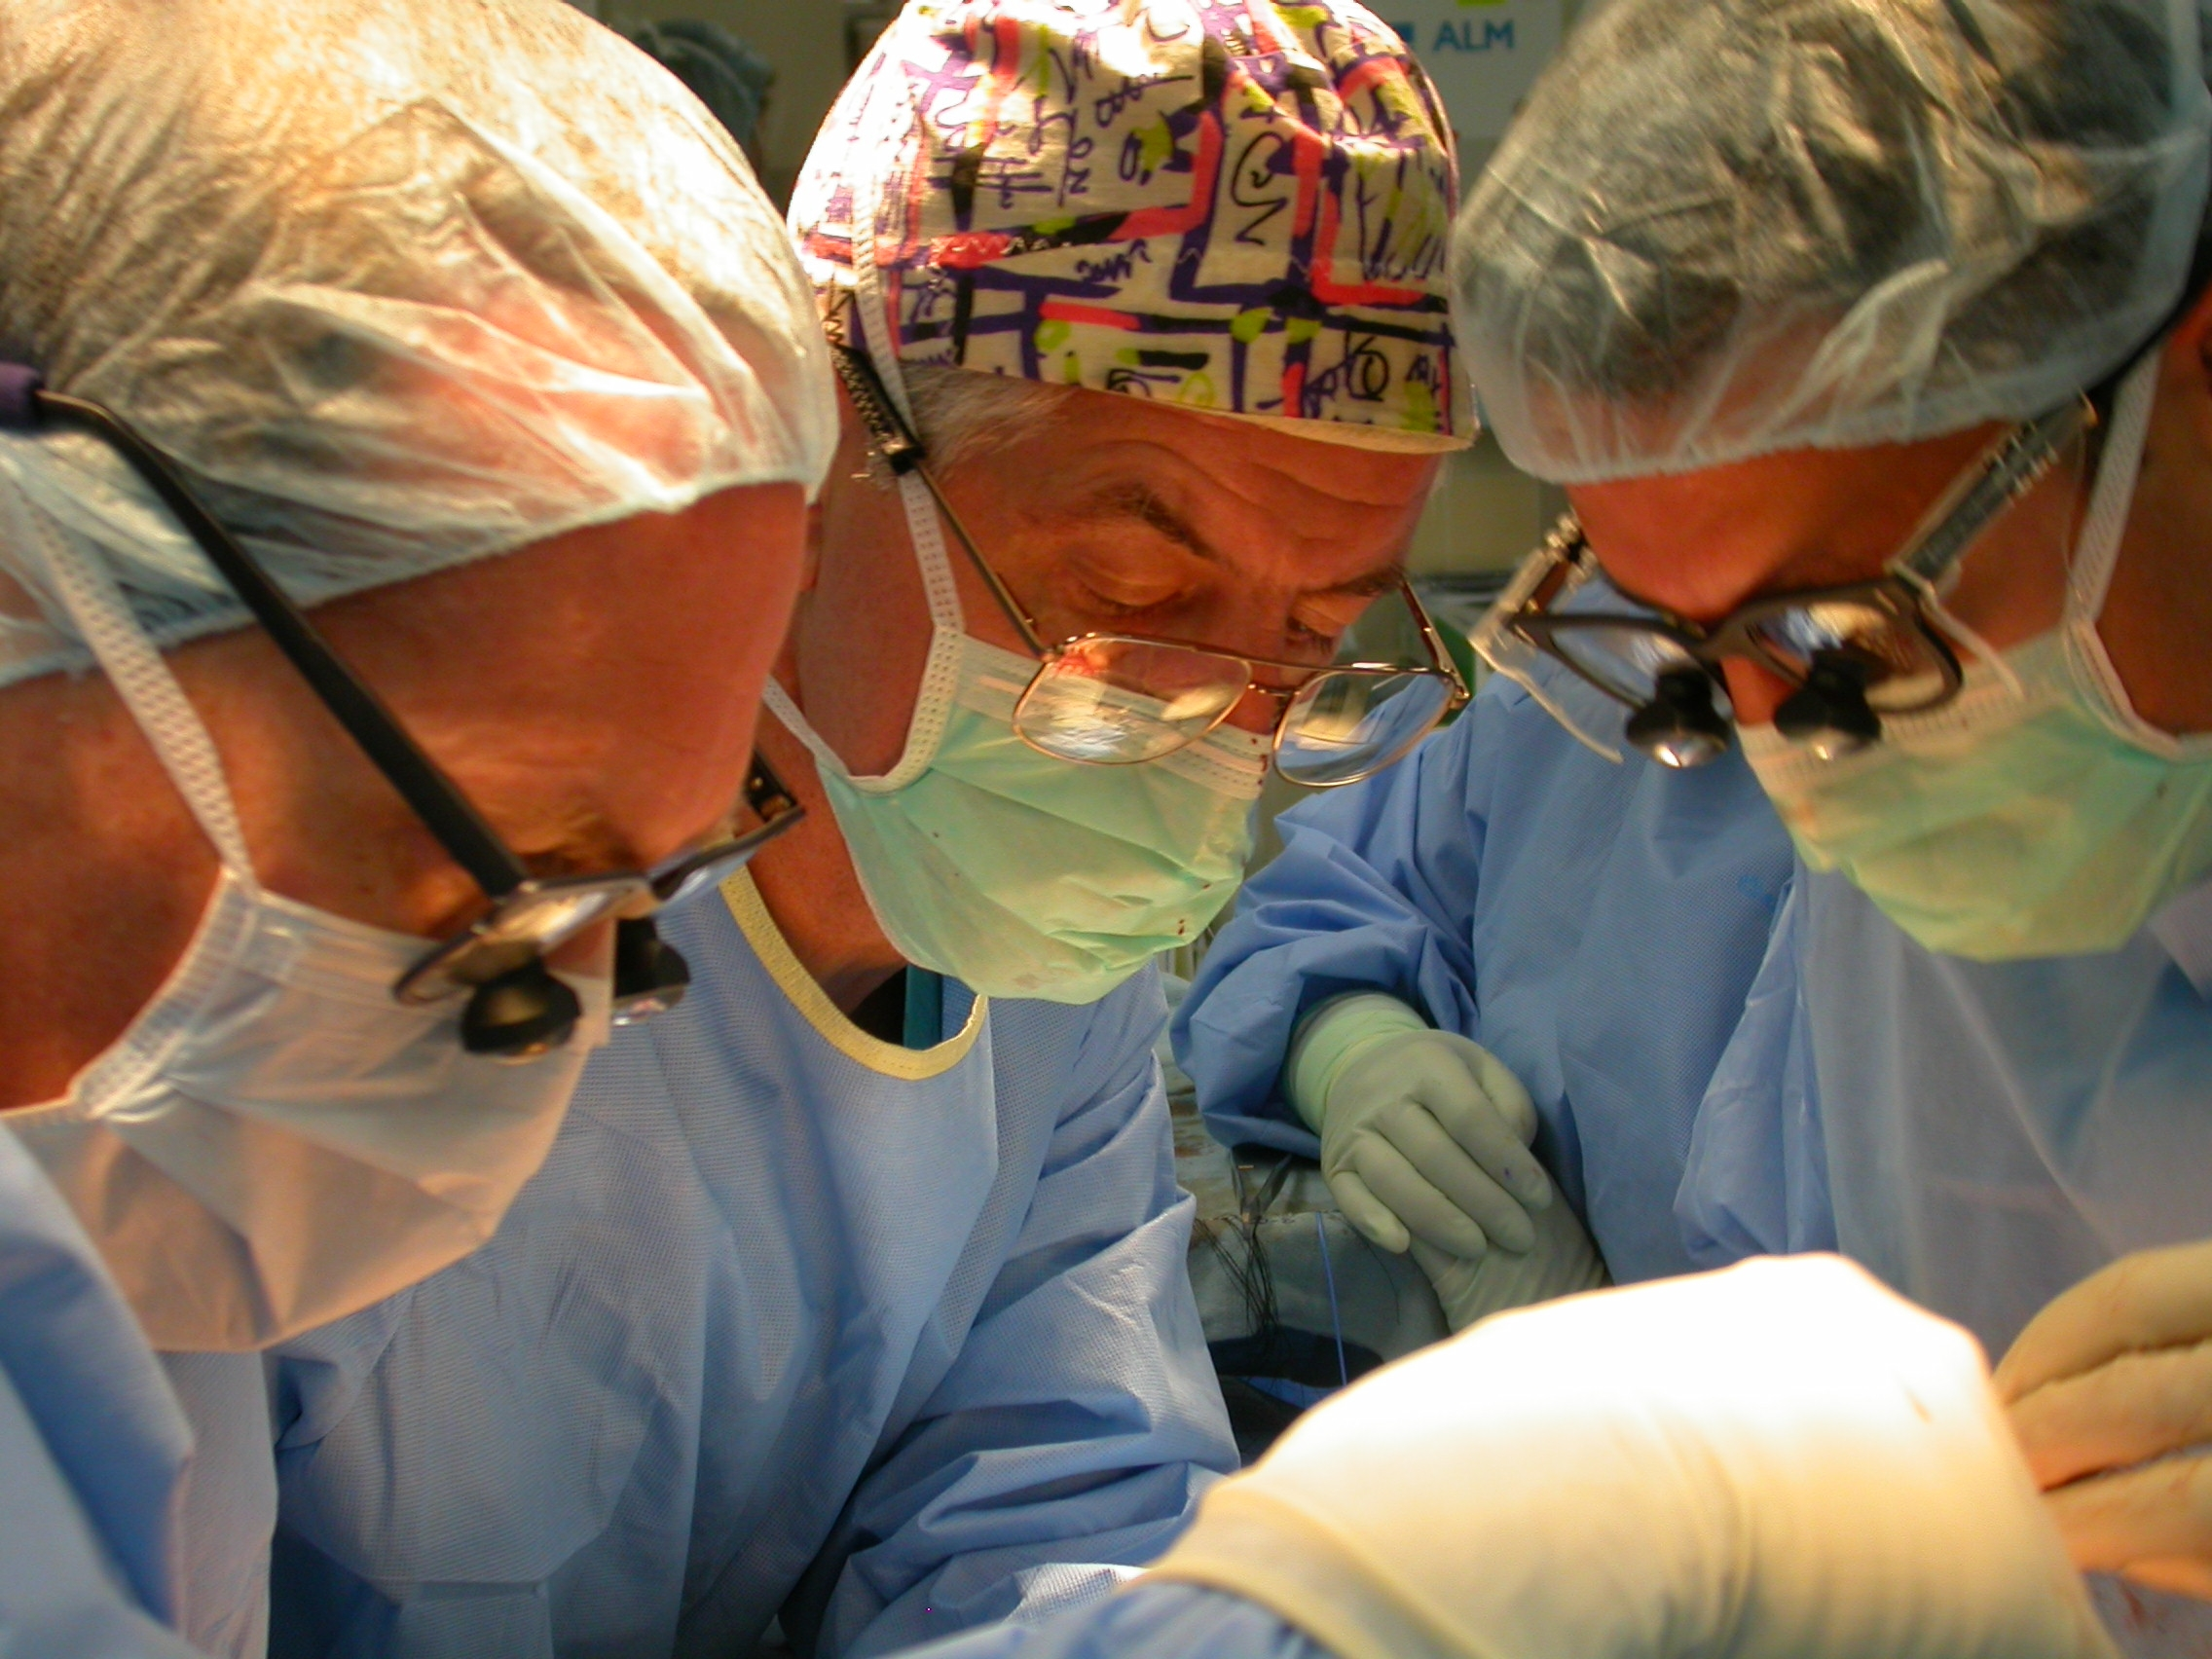 in-surgery-with-hart2-jpg